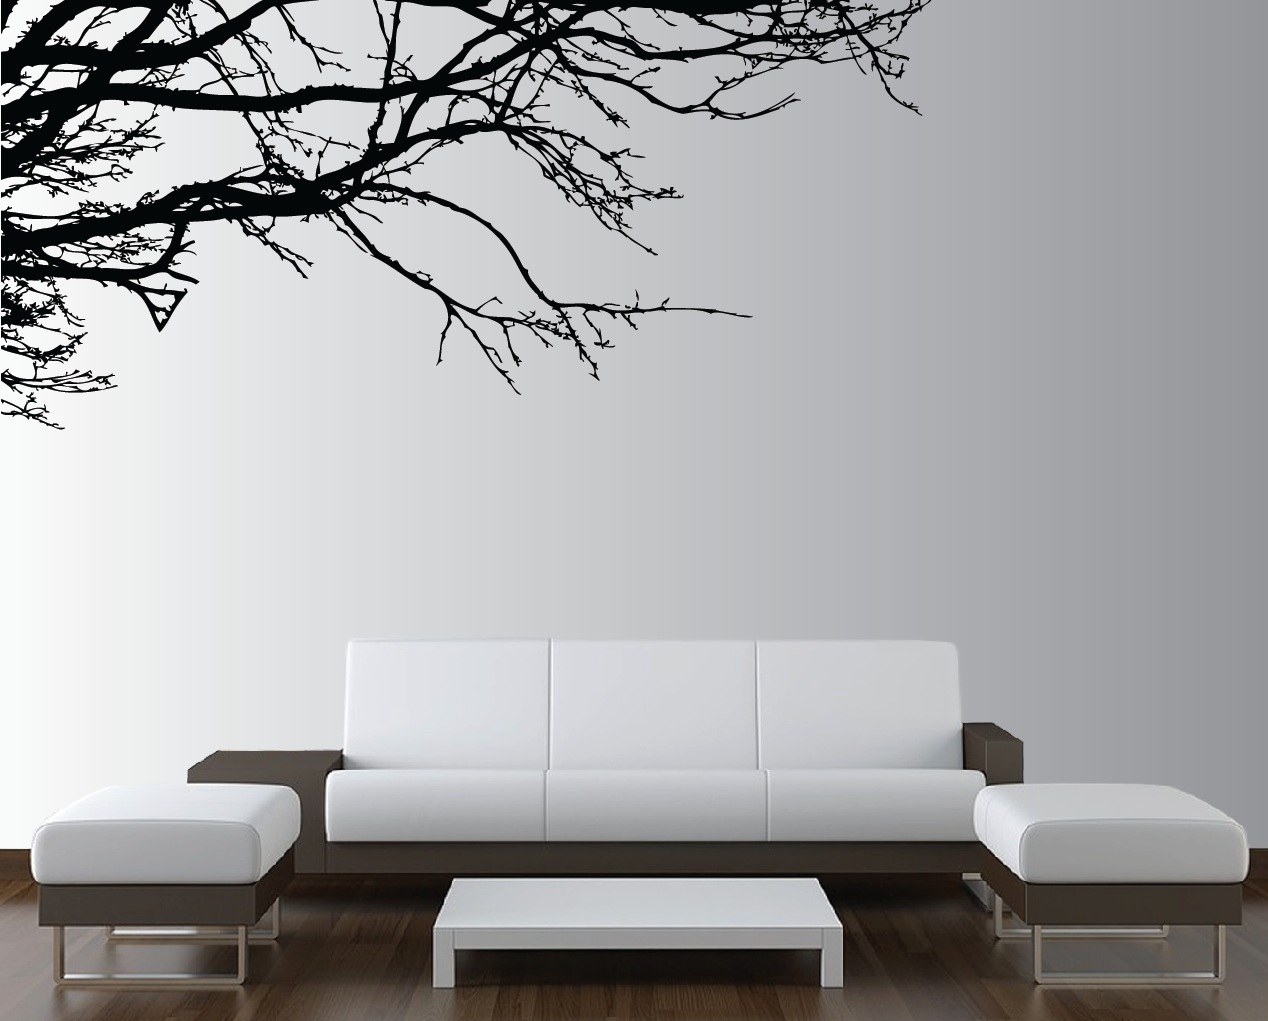 Large wall tree nursery decal oak branches 1130 for Living room wall decor